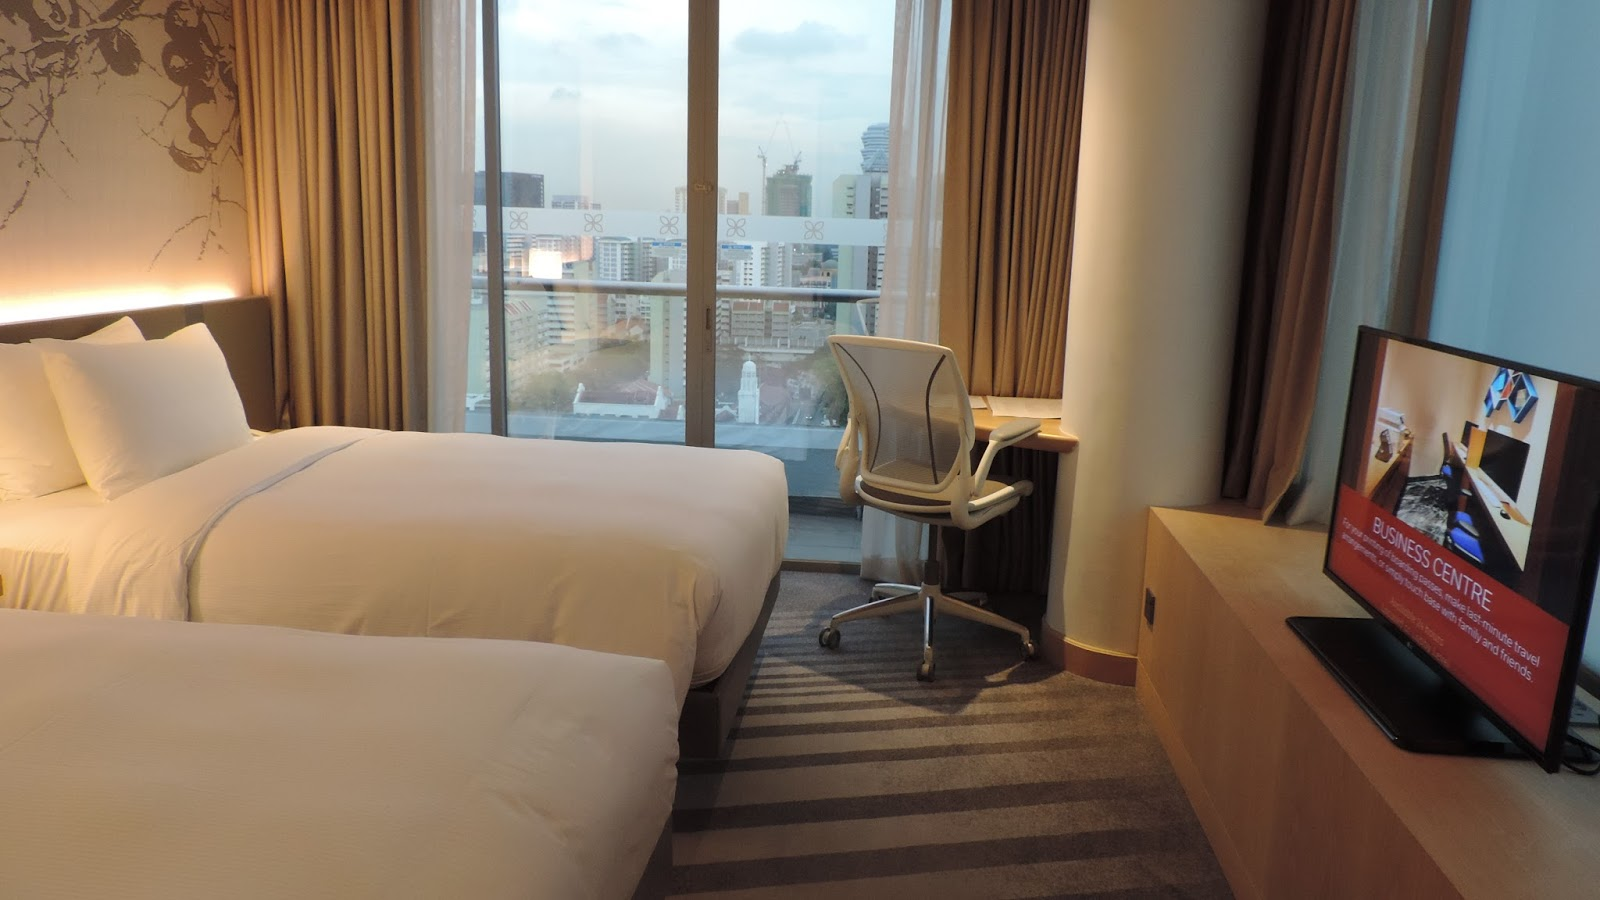 The Filipino Traveler: Review: Hilton Garden Inn Singapore Serangoon